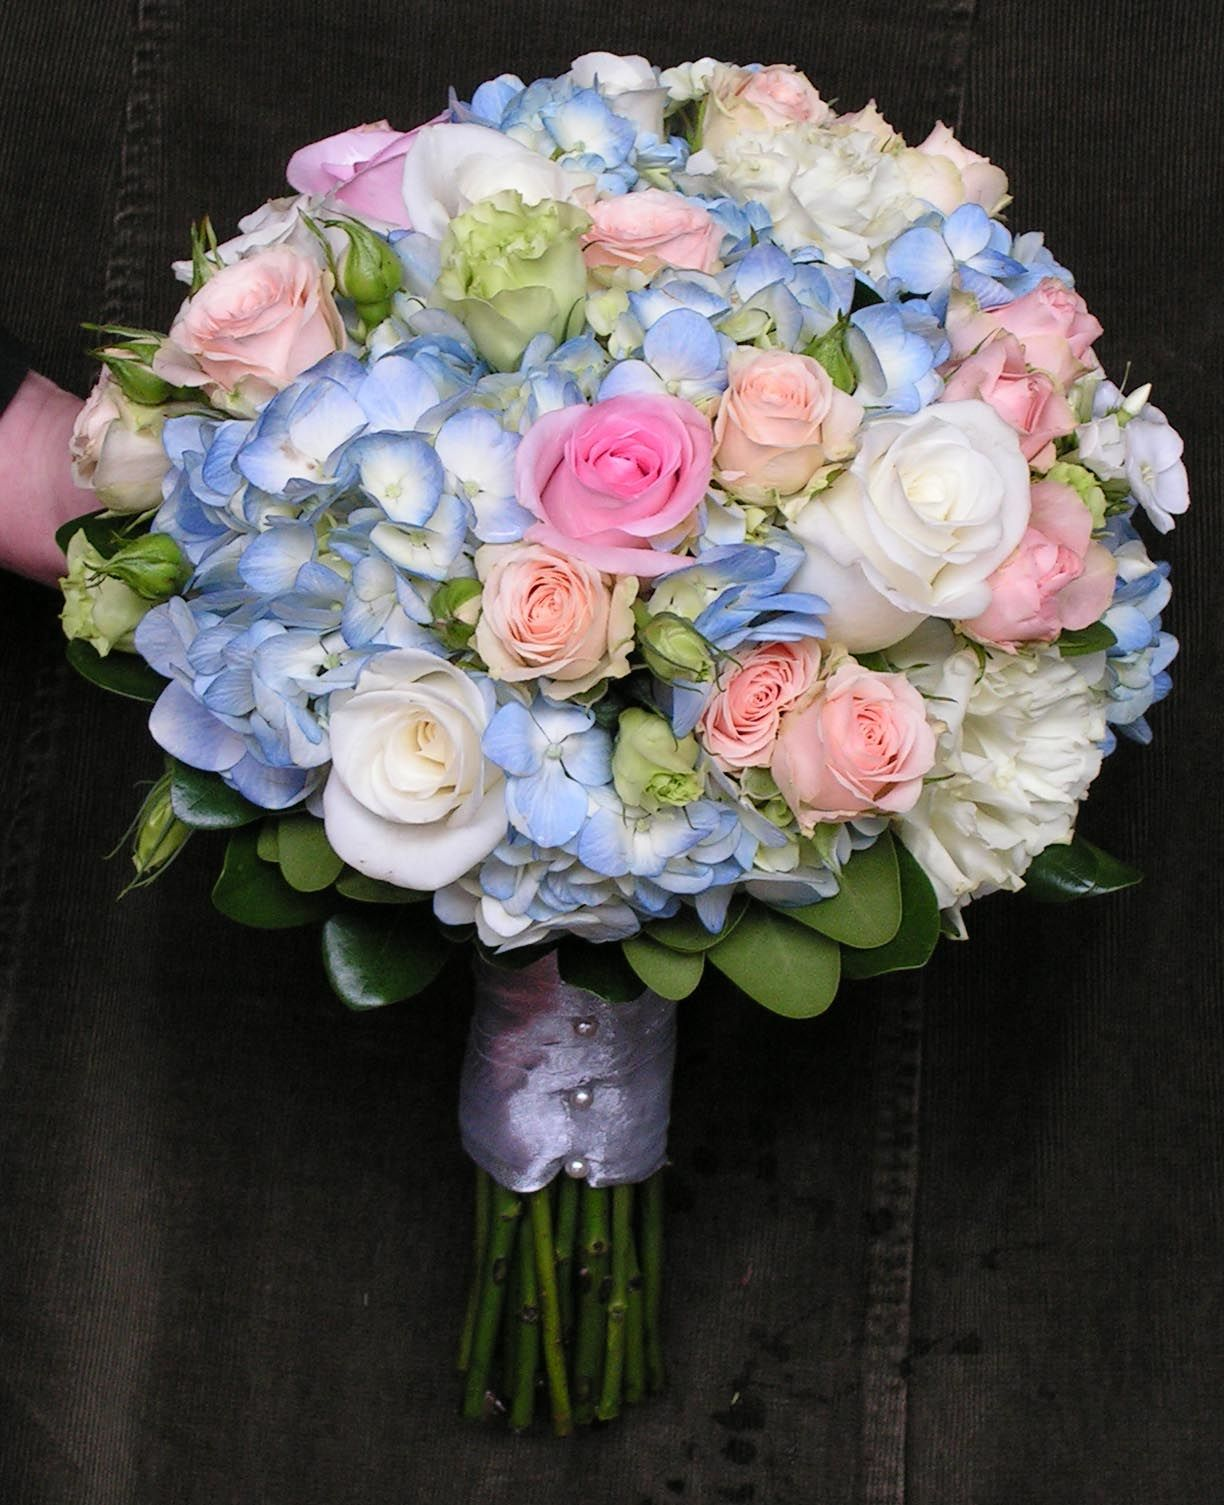 Blue hydrangea bouquet with pink roses my wedding for Pink and blue flower arrangements